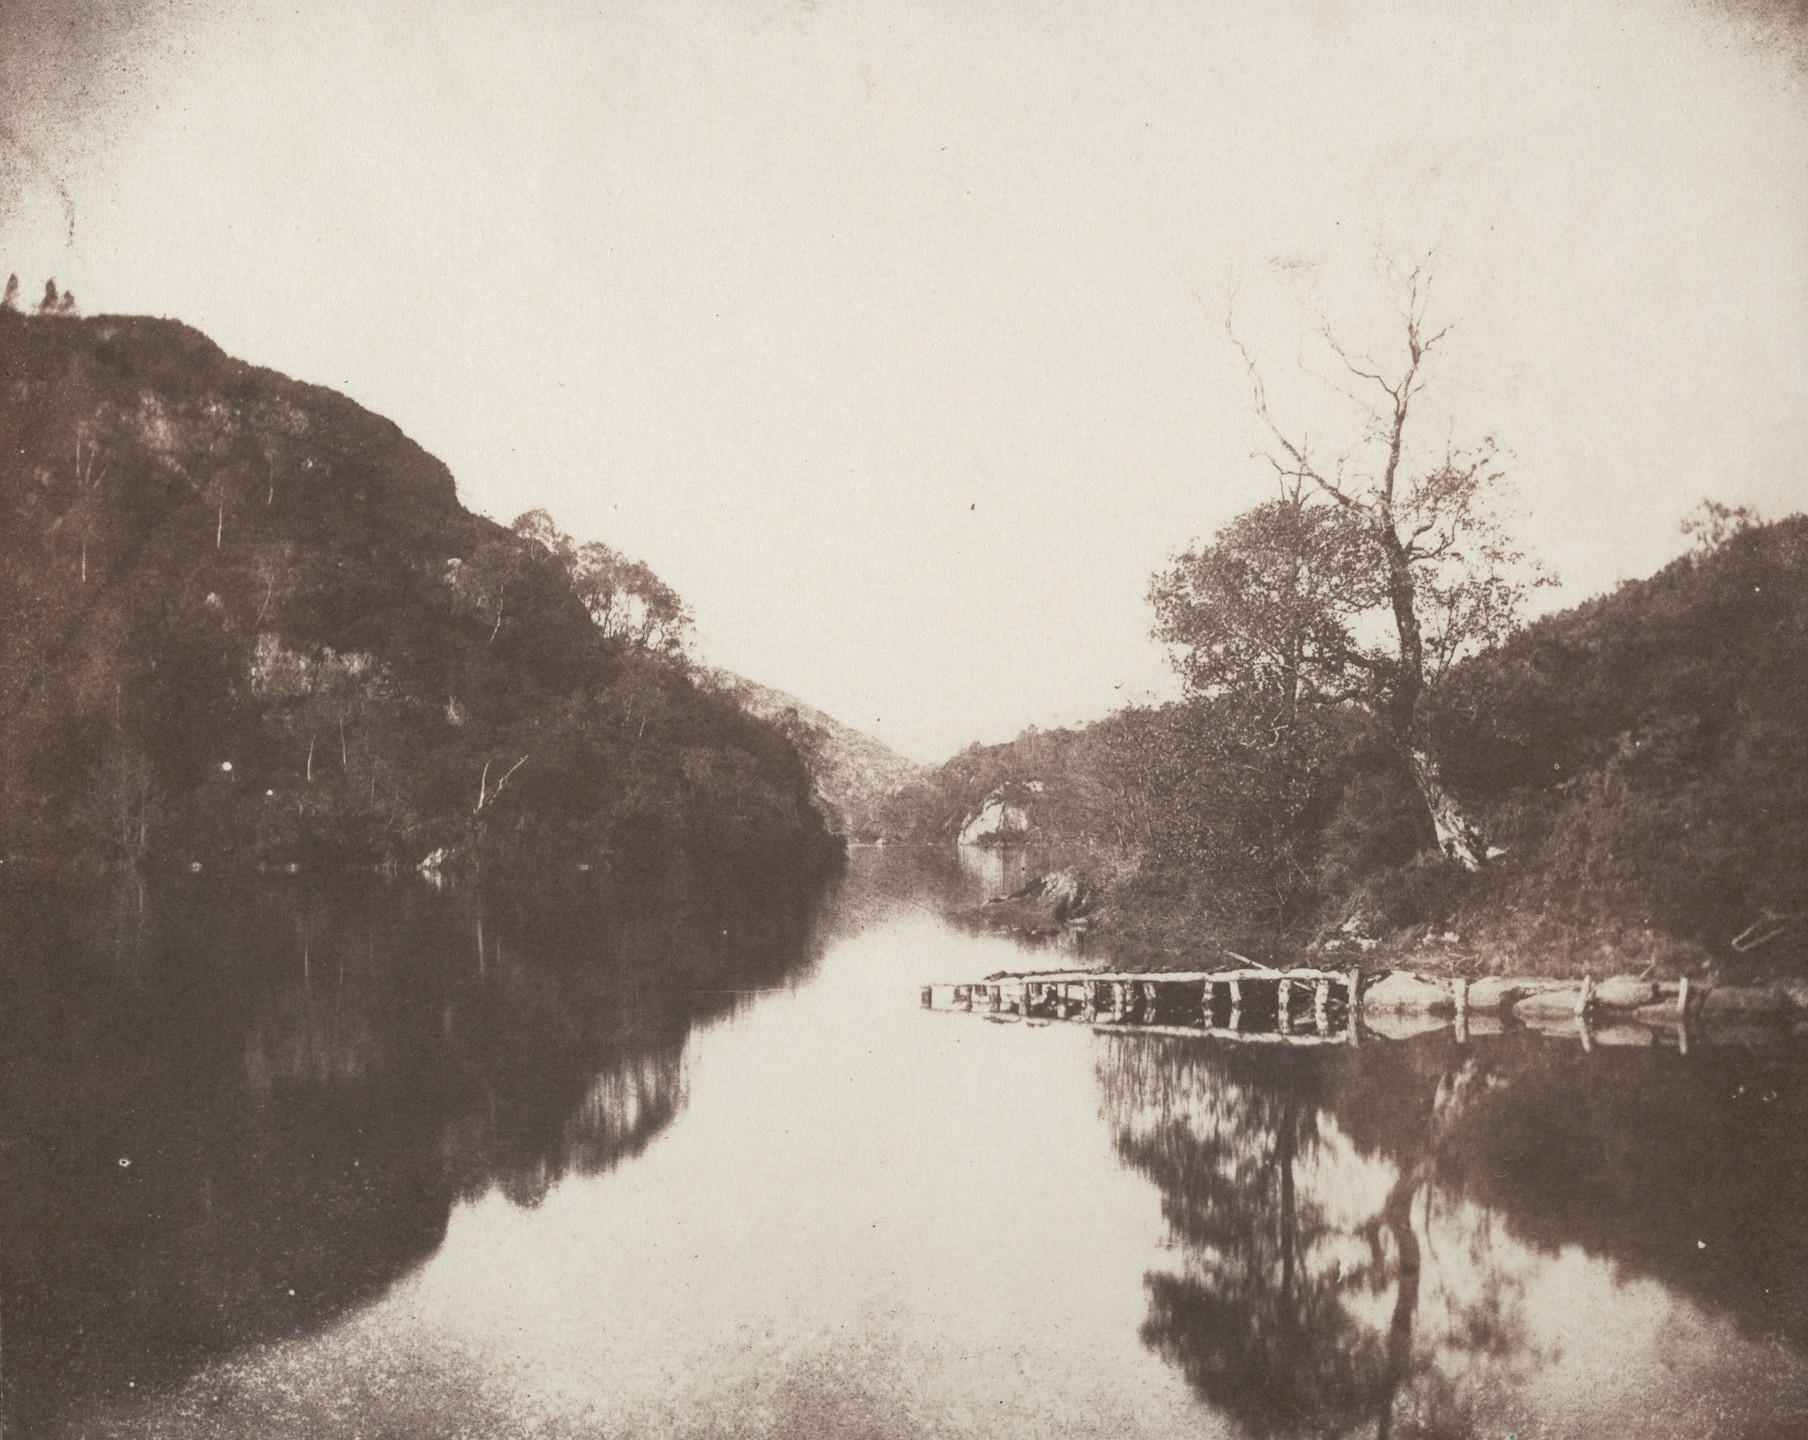 William Henry Fox Talbot. Loch Katrine. 1844